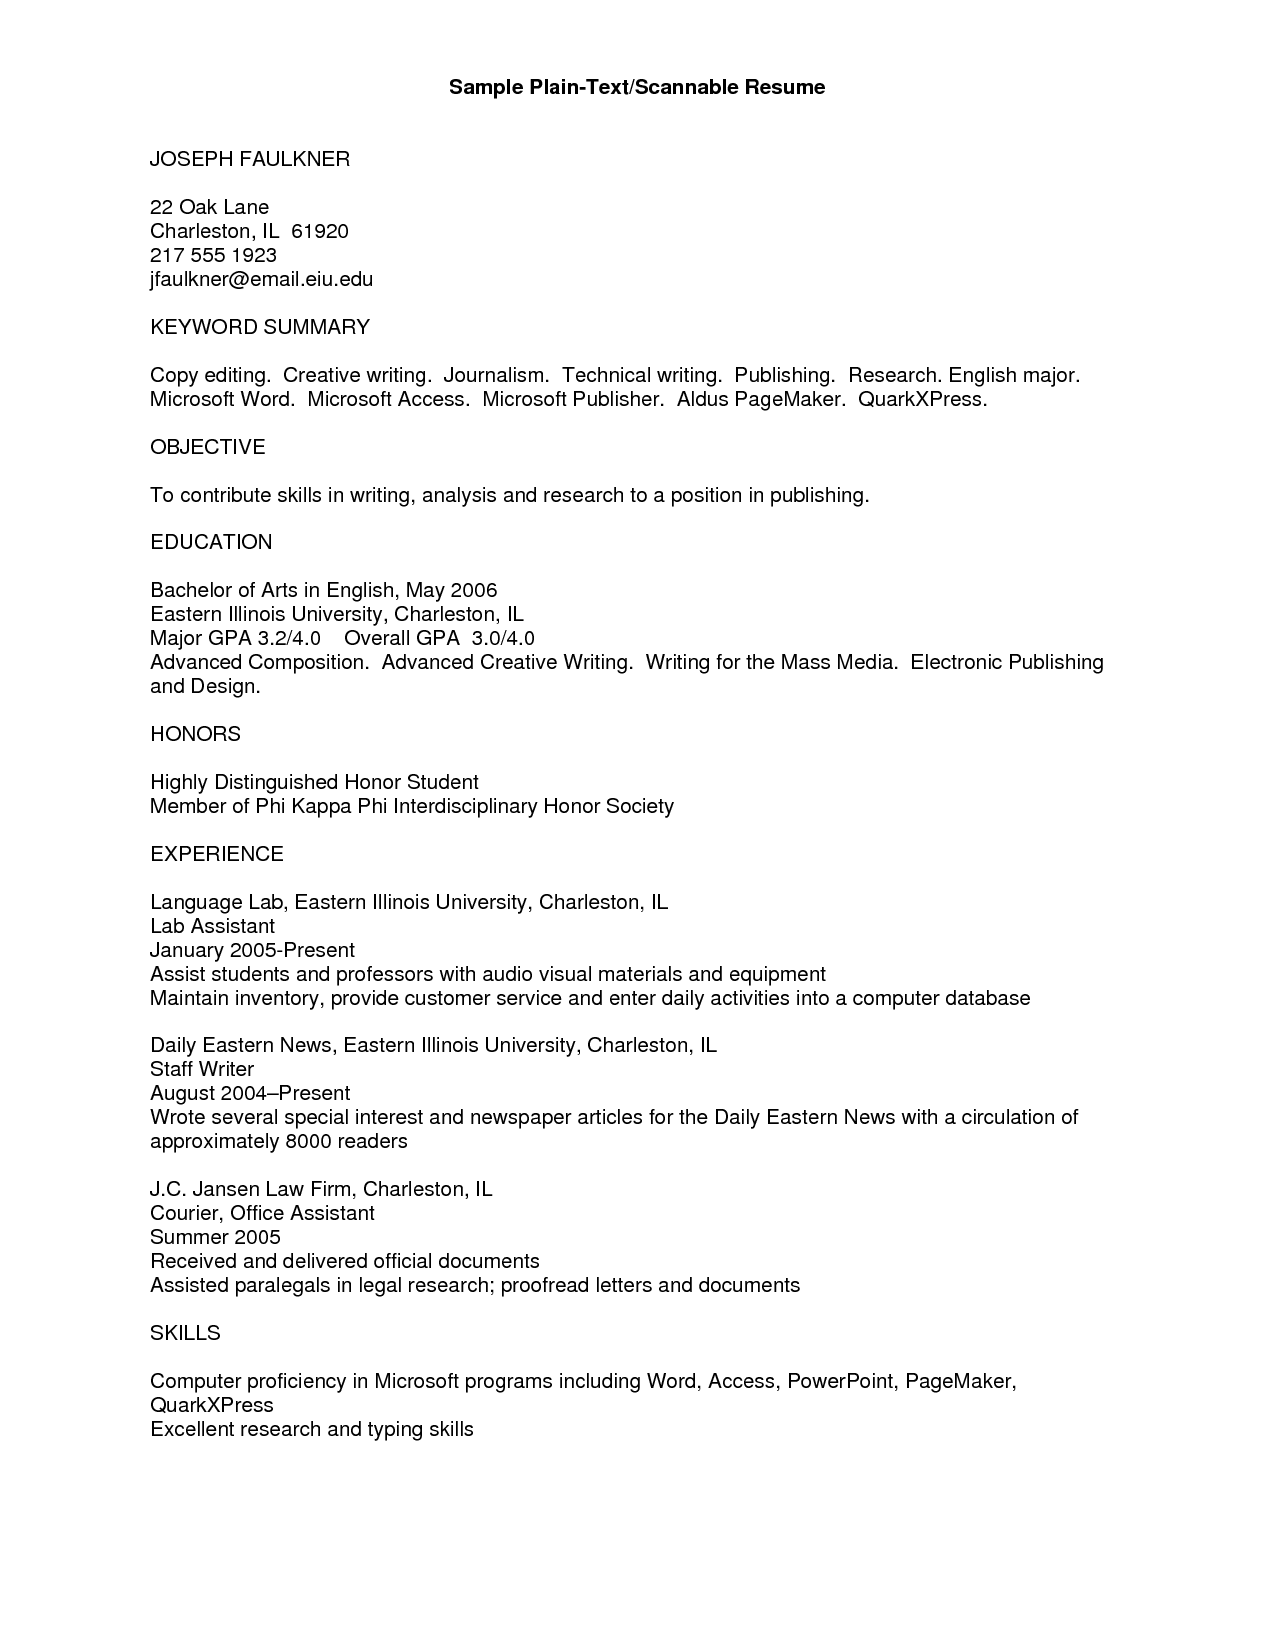 resume text template